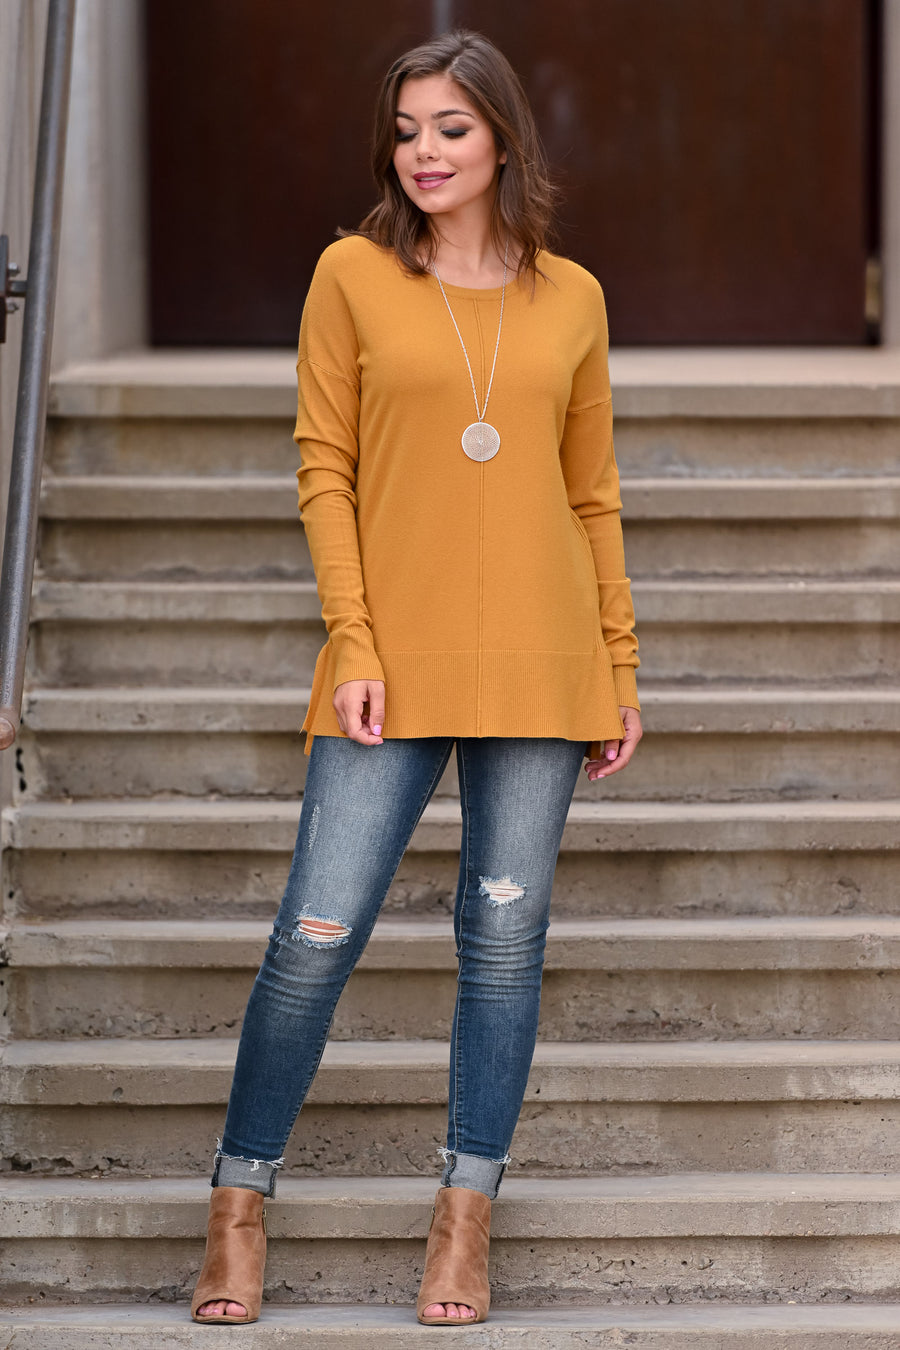 For Good Reason Top - Mustard women's drop shoulder, long sleeve sweater, boat neckline, center seam, ribbed details, hi-low hemline, side slits, soft stretchy material, closet candy; Model: Hannah Ann S